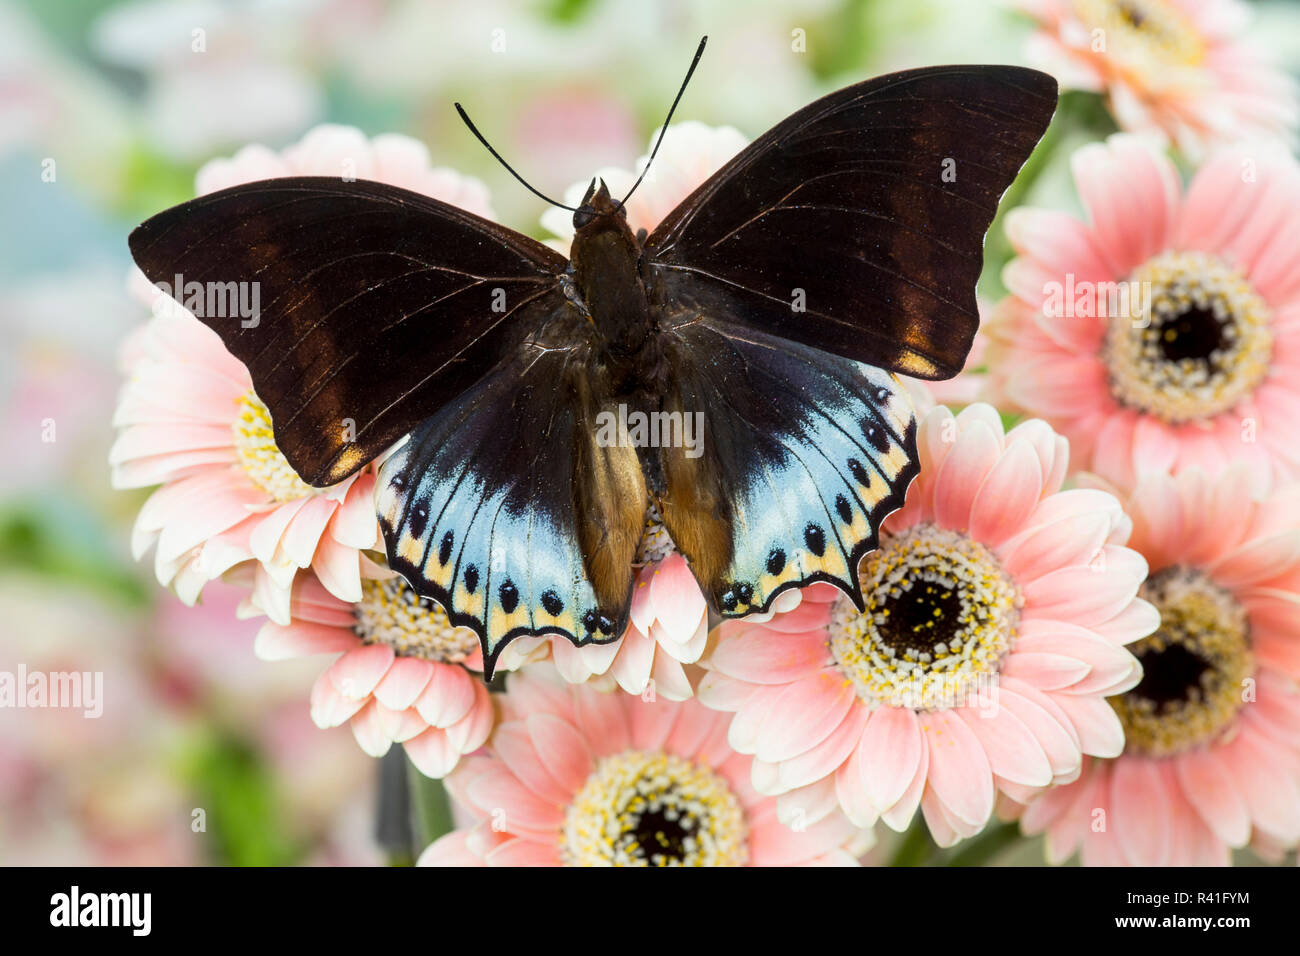 Bộ sưu tập cánh vẩy 4 - Page 19 Tropical-butterfly-charaxes-eurialus-from-indonesia-on-pink-gerber-daisies-R41FYM